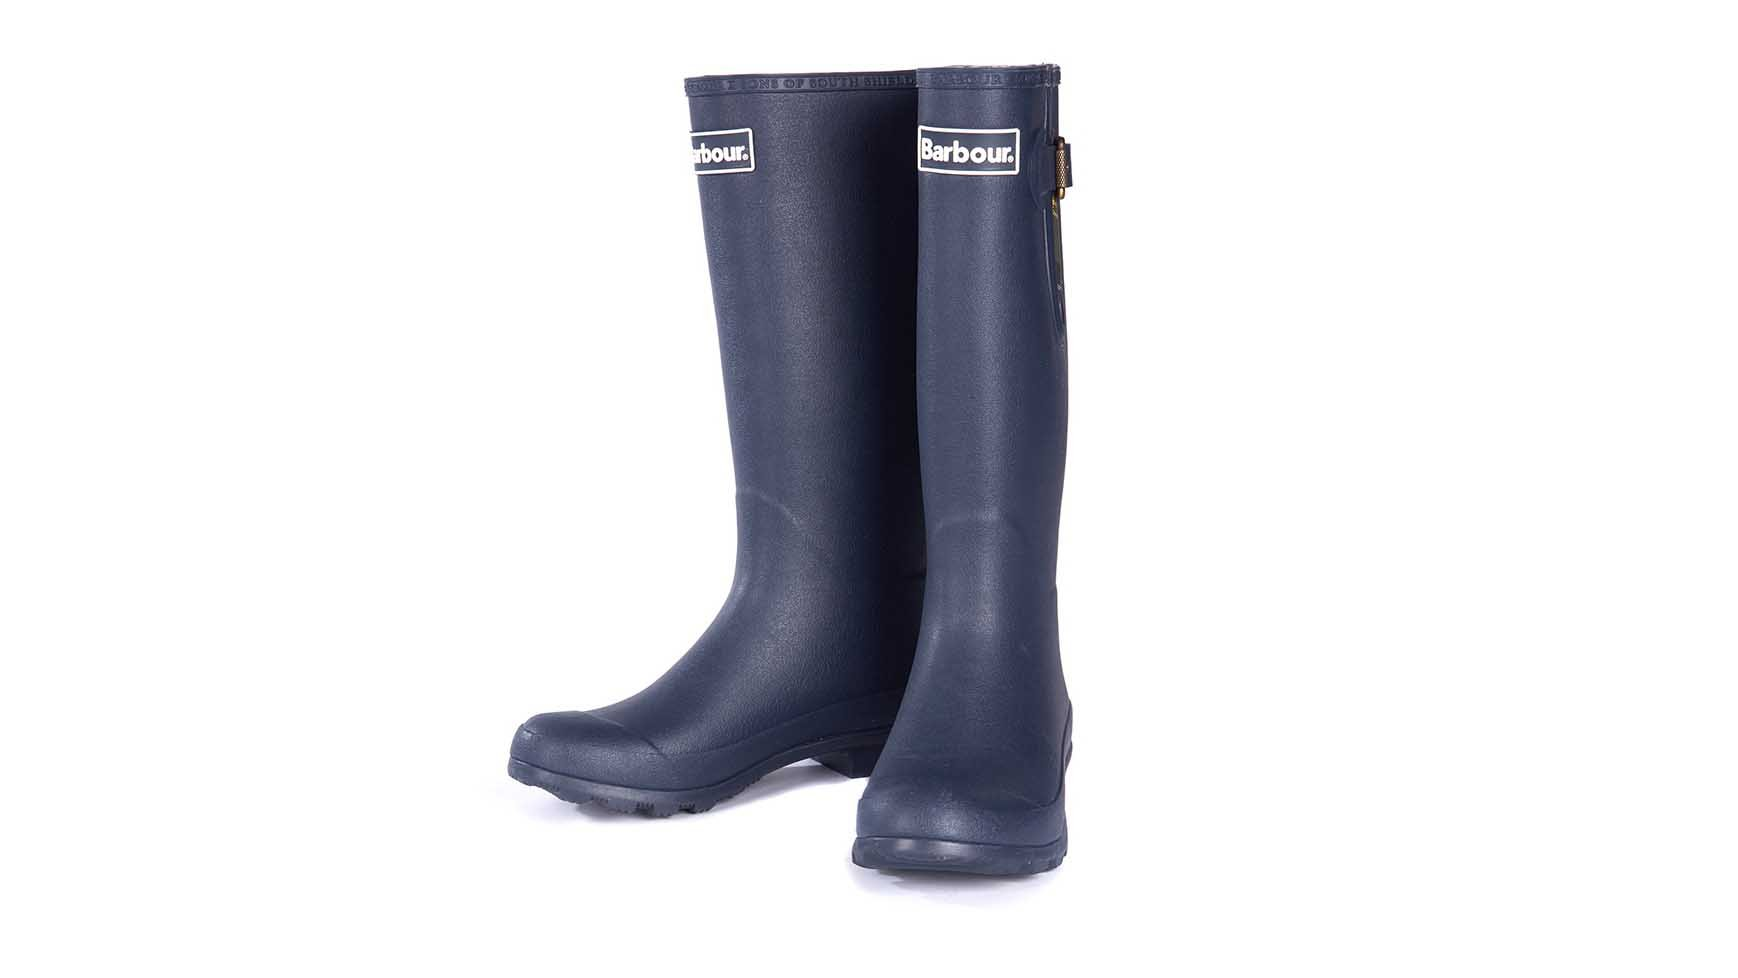 b16fa366605 The Barbour Cleadon wellies for women feature a lower leg length and a wider  calf to suit a range of leg shapes